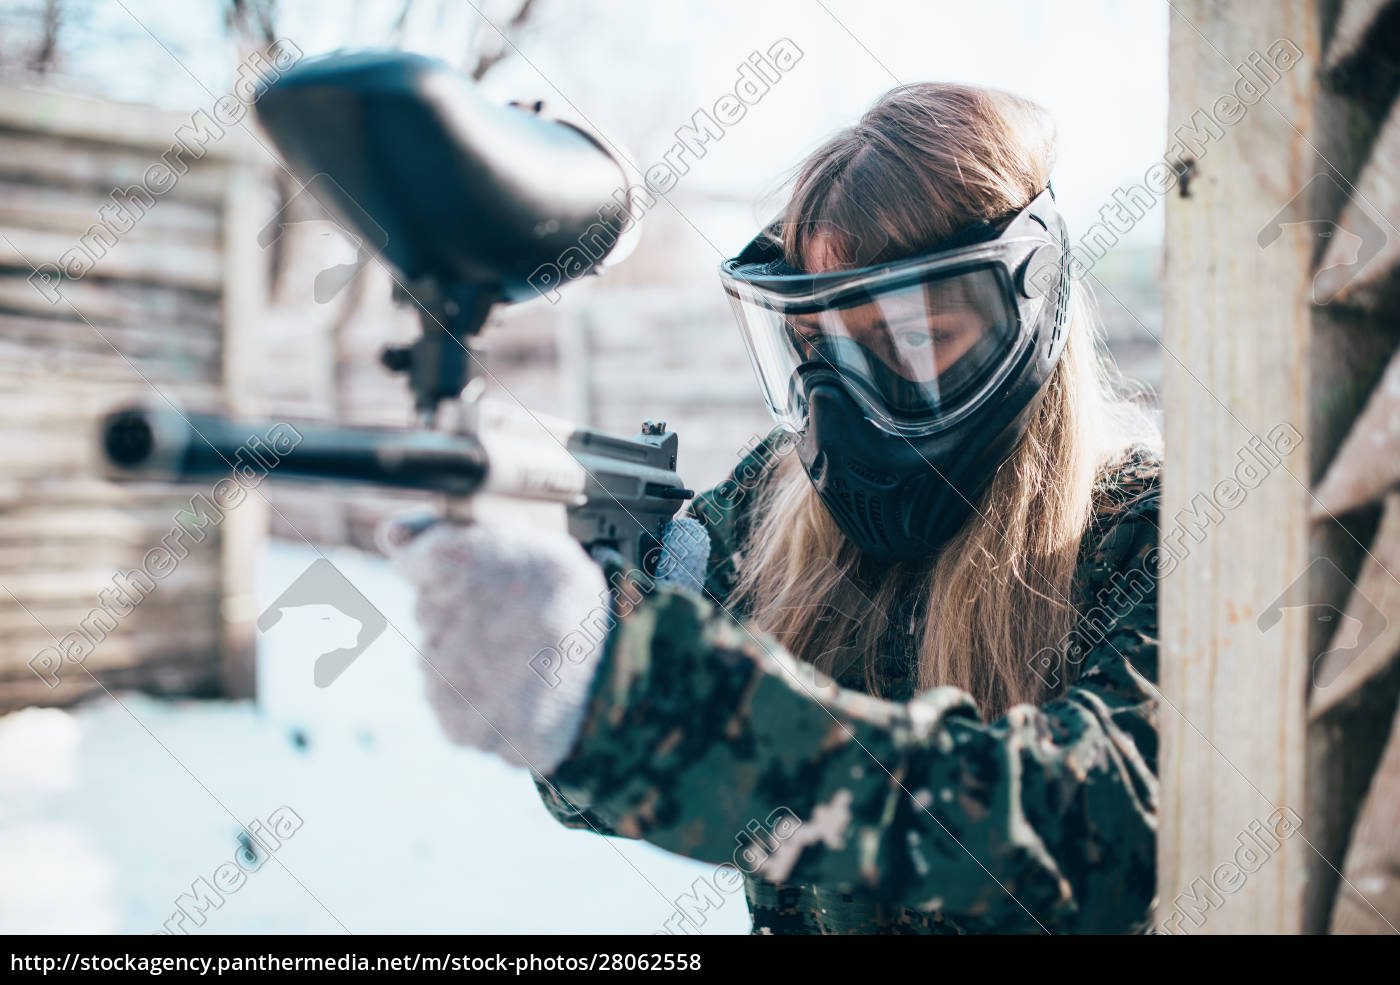 female, paintball, player, with, marker, gun - 28062558